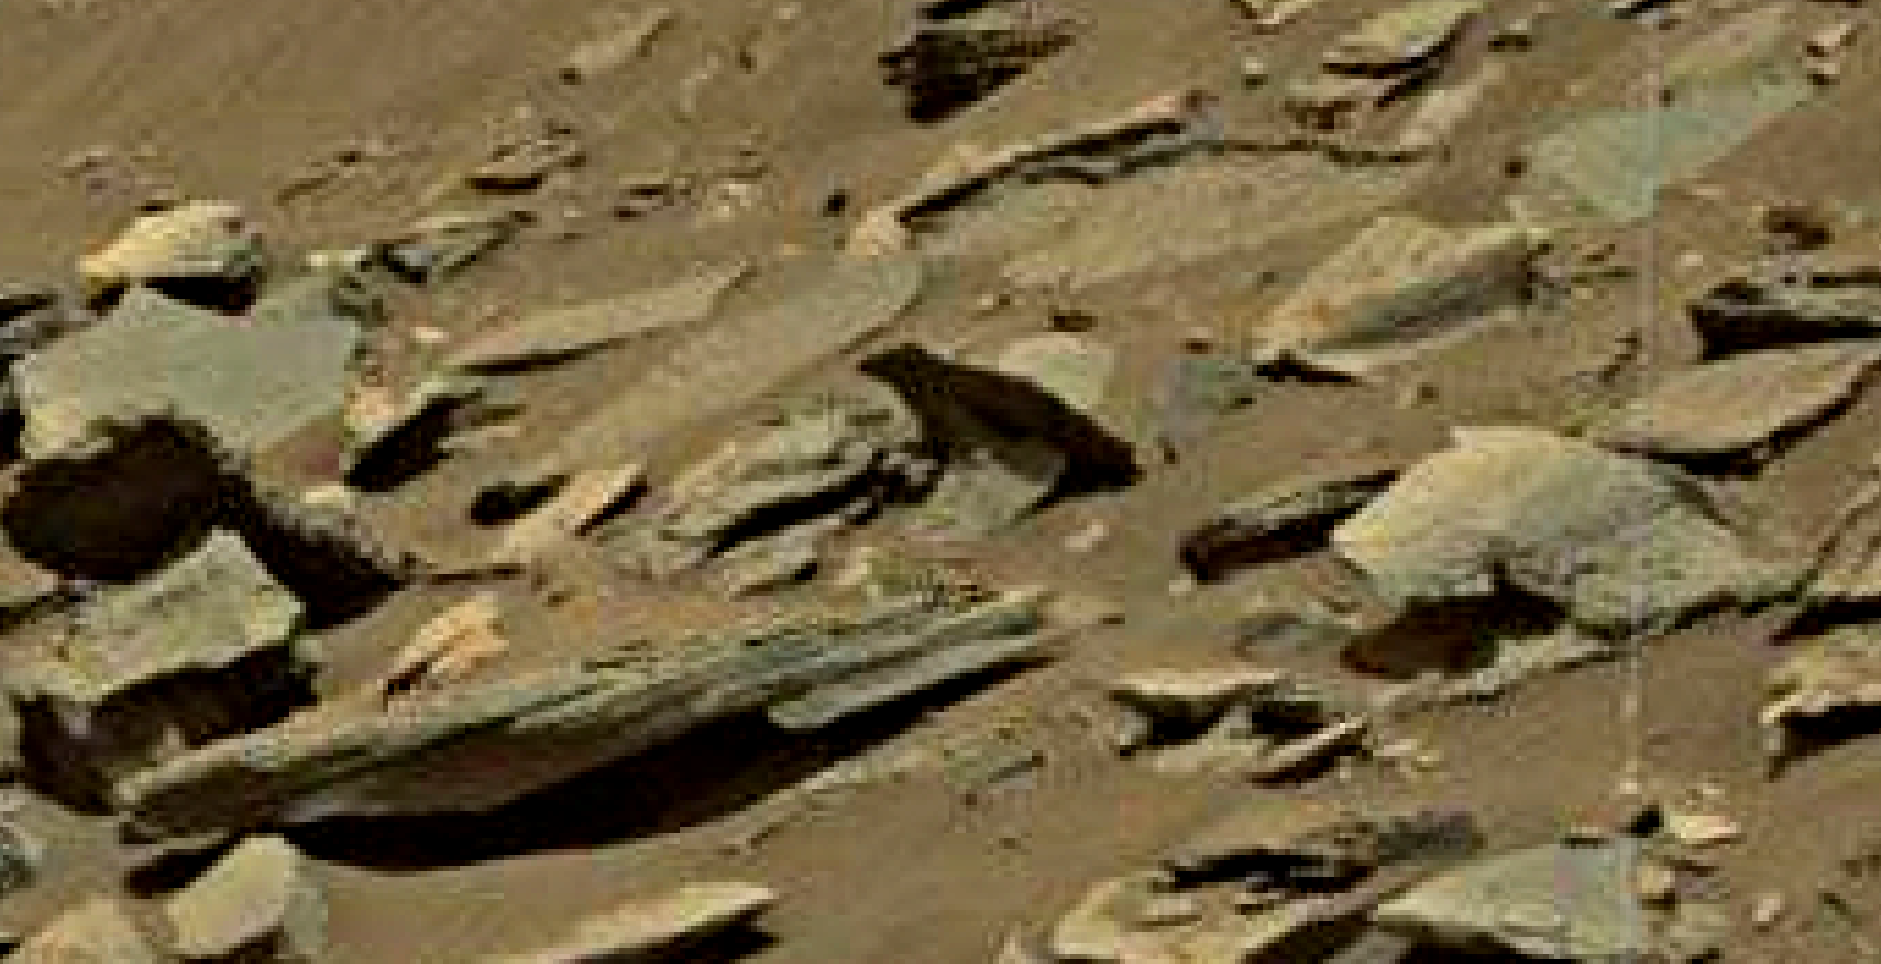 mars-sol-1455-anomaly-artifacts-2-was-life-on-mars